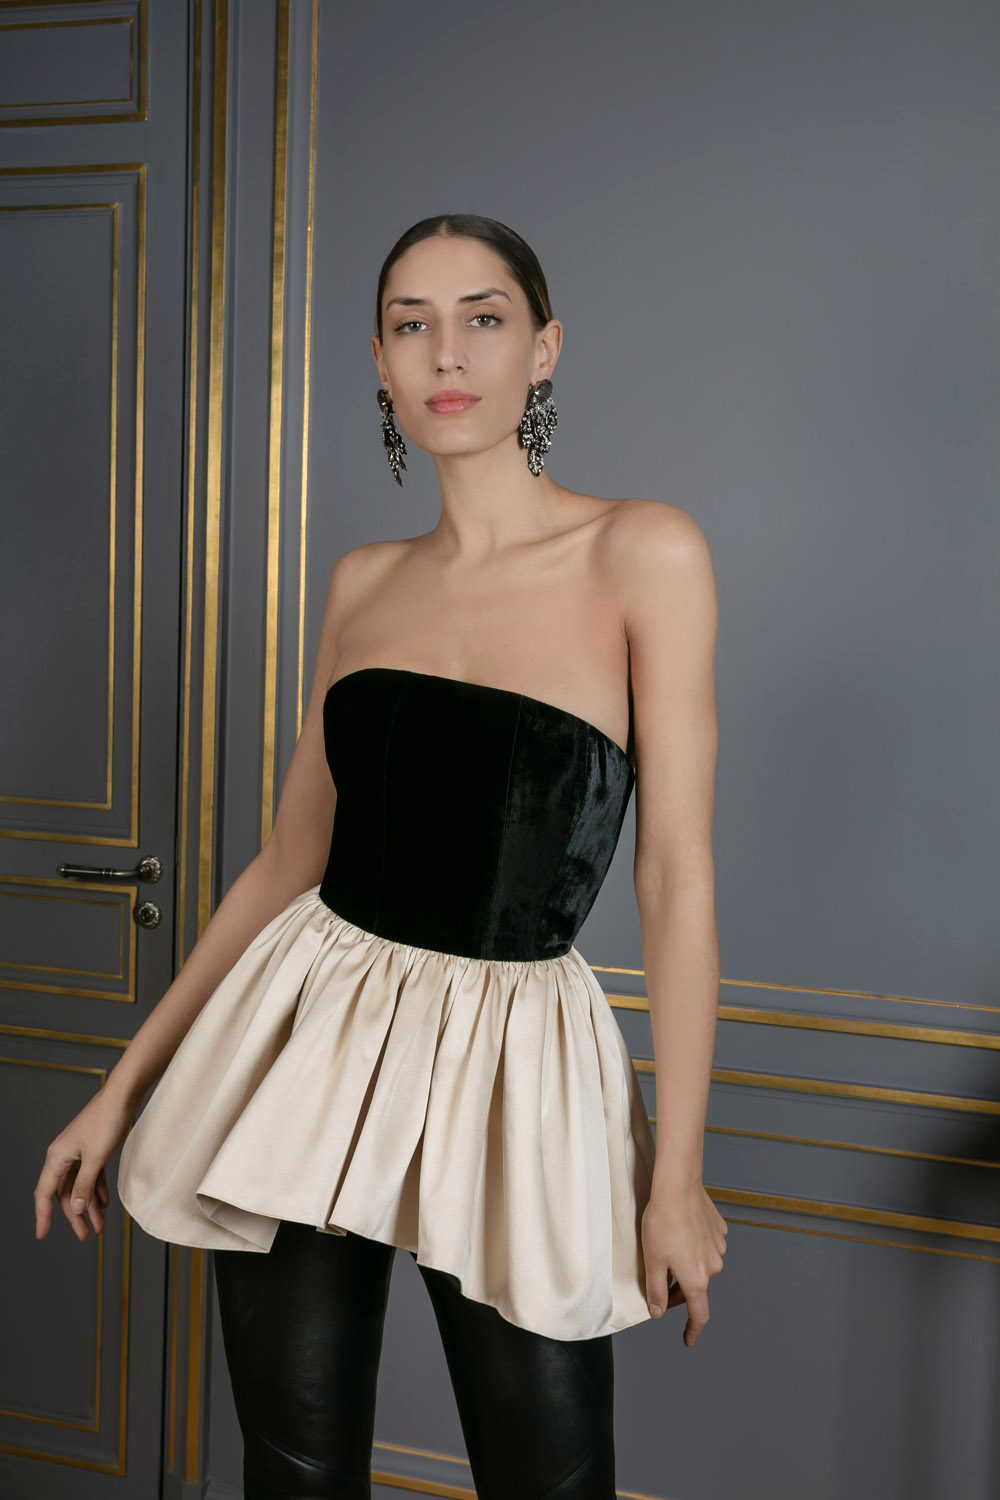 013357fc7f boutiquelessuites.com - LesSuitesOnline buy Martin Grant - Strapless black  and ivory top on our website